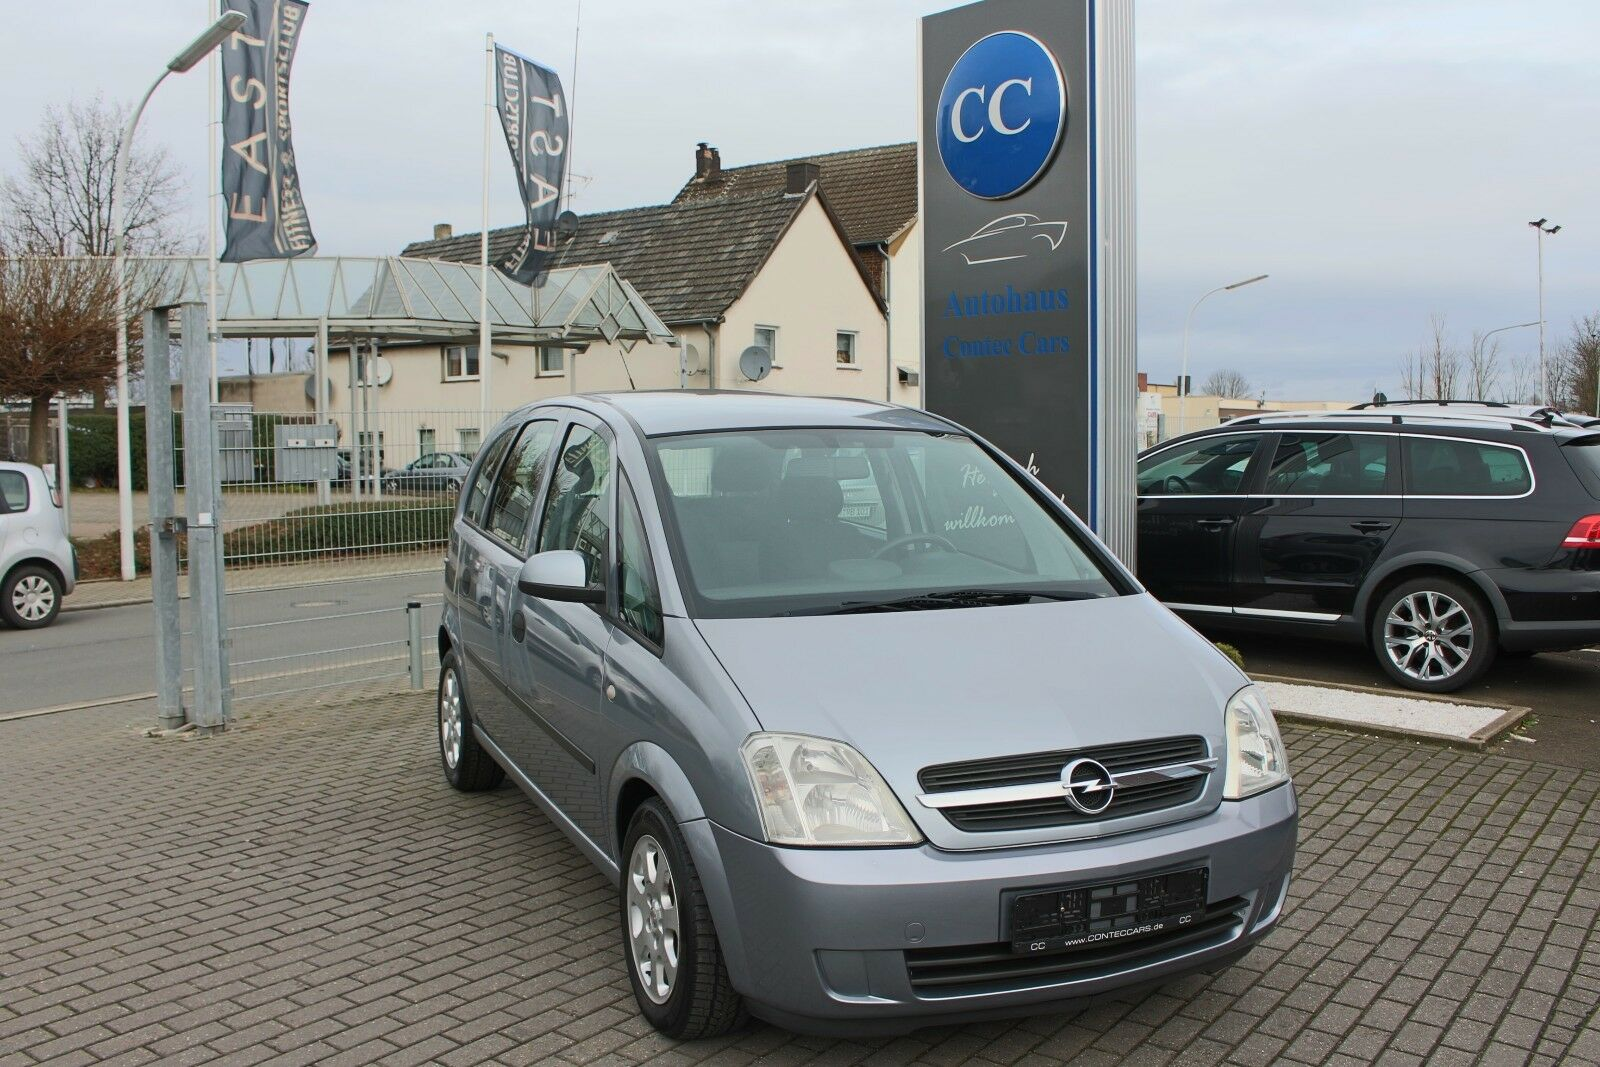 OPEL Meriva 1.7 CDTI Enjoy // Audiosystem CDR 2005 //